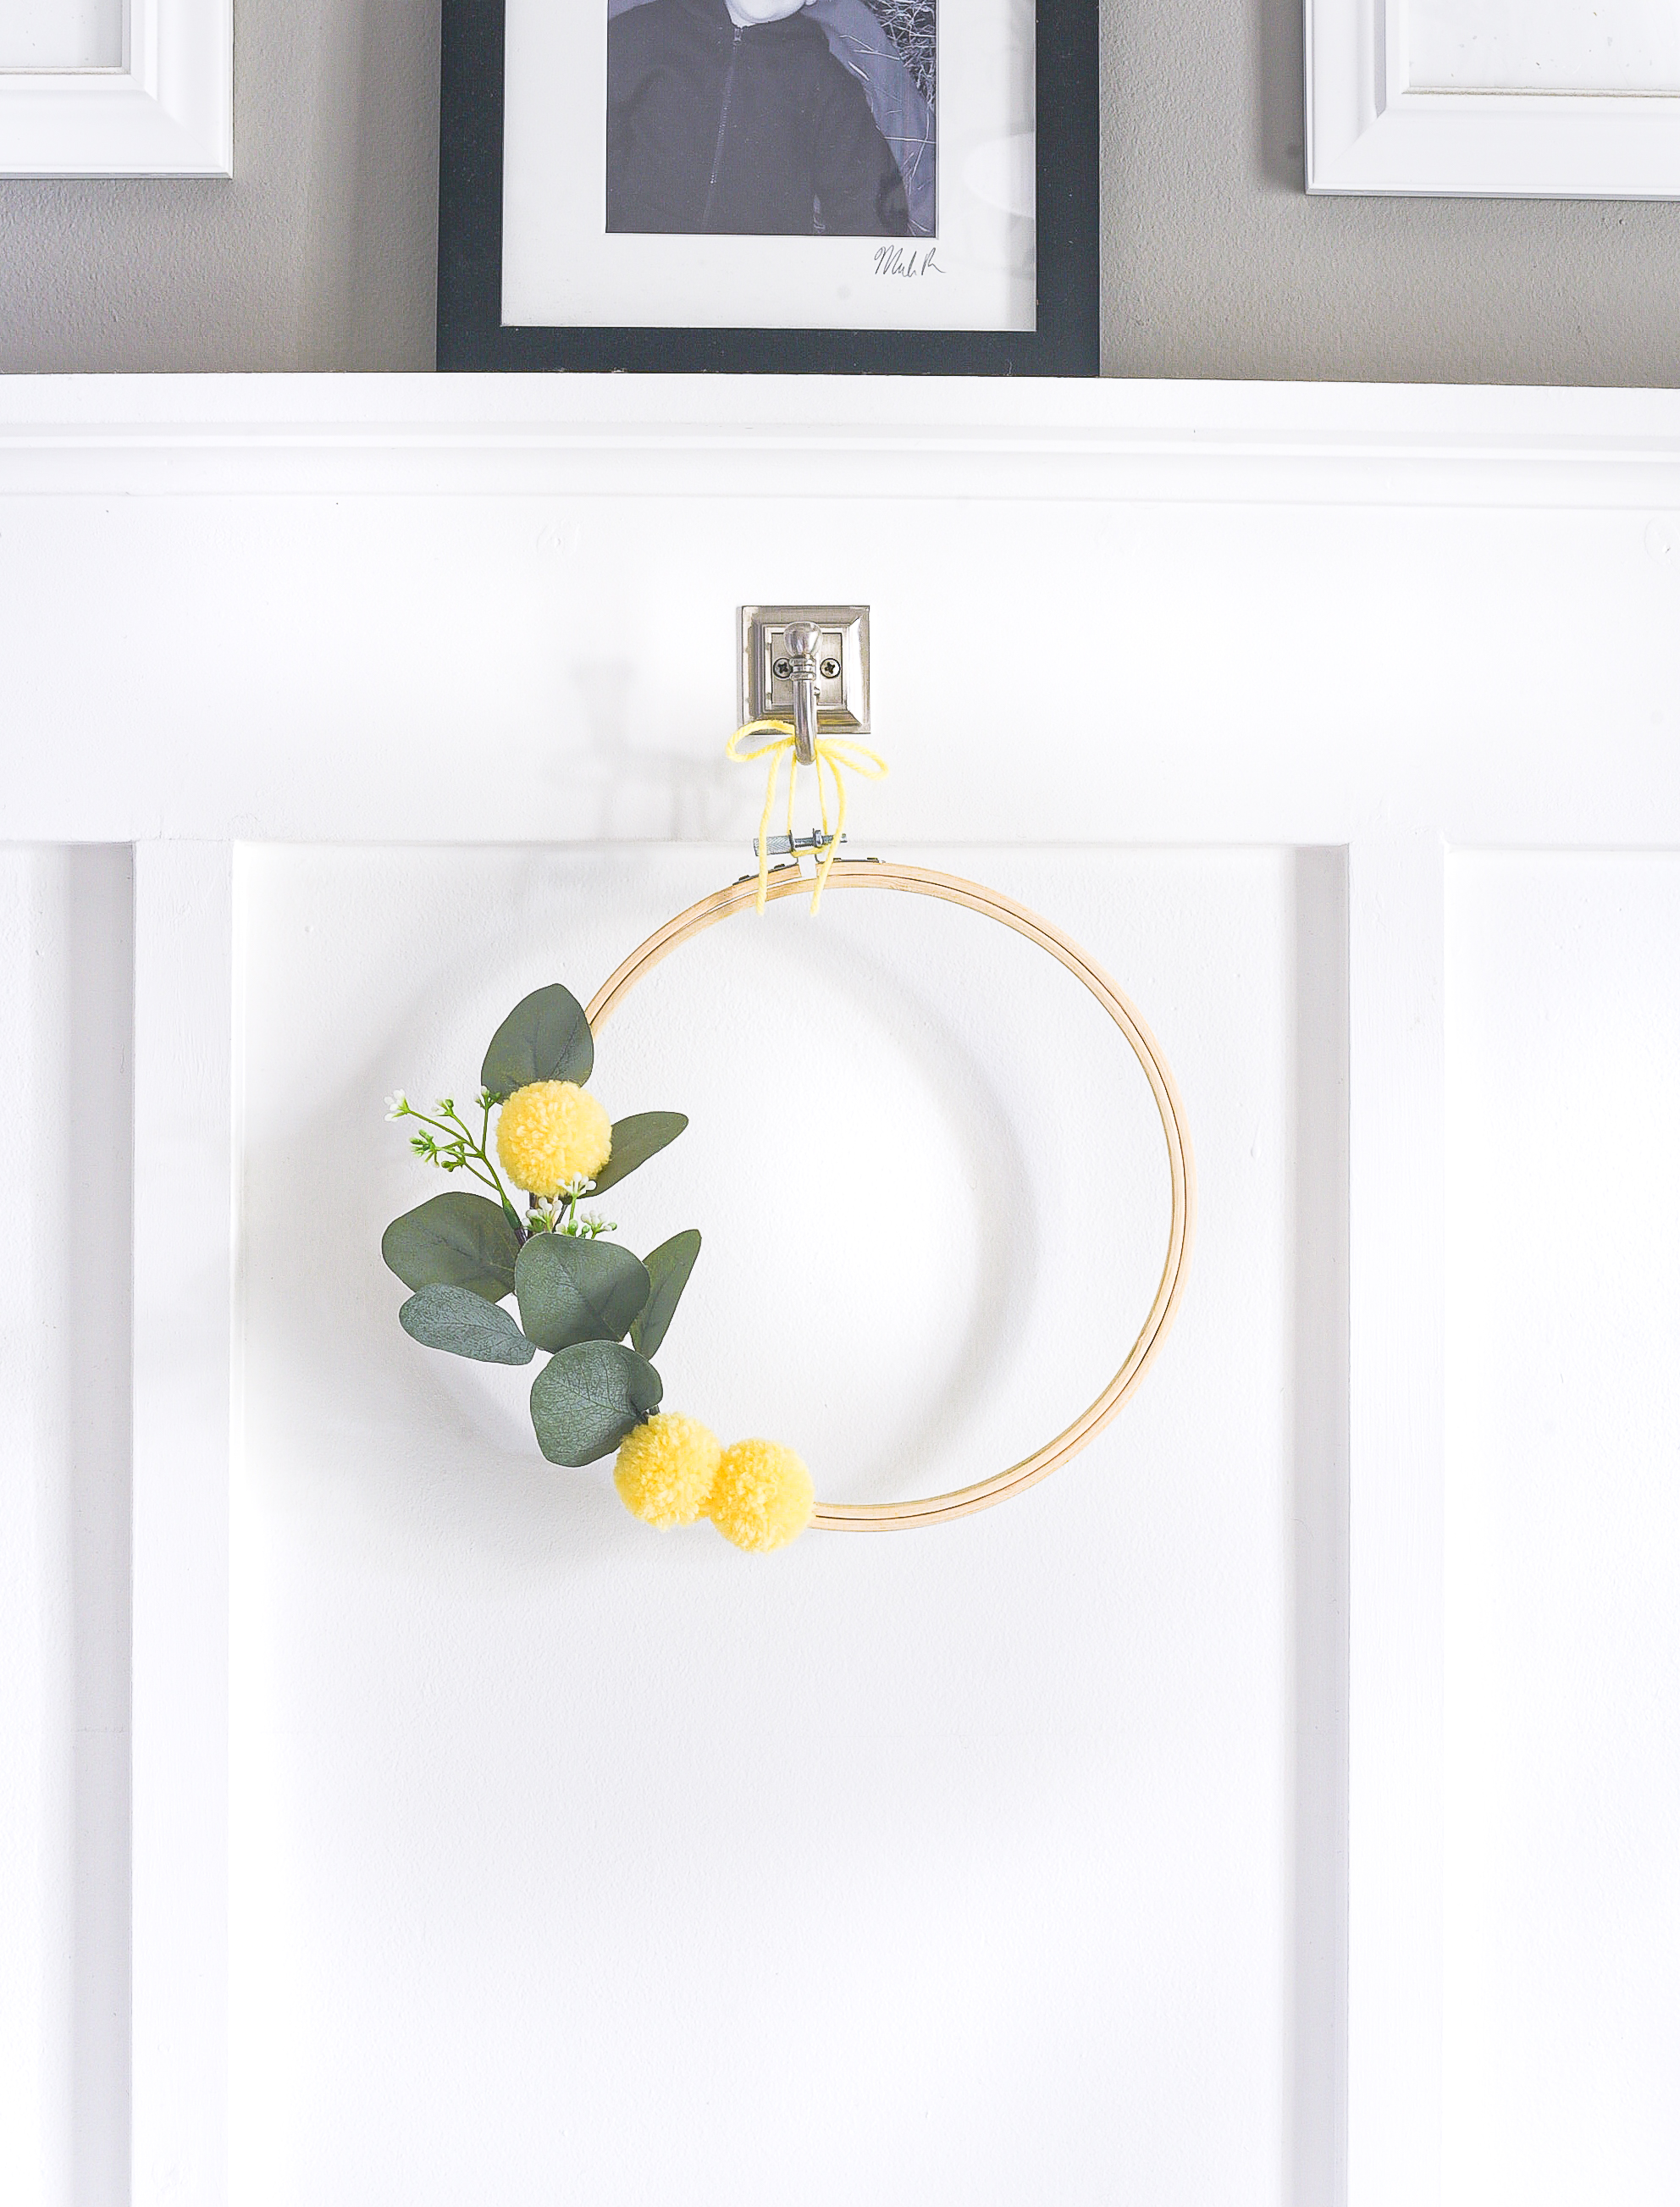 Embroidery Hoop Wreath with Faux Bill Ball Pom Poms - Yellow Summer Wreath Idea. Summer Embroidery Hoop Wreath with Faux Bill Ball Pom Poms.